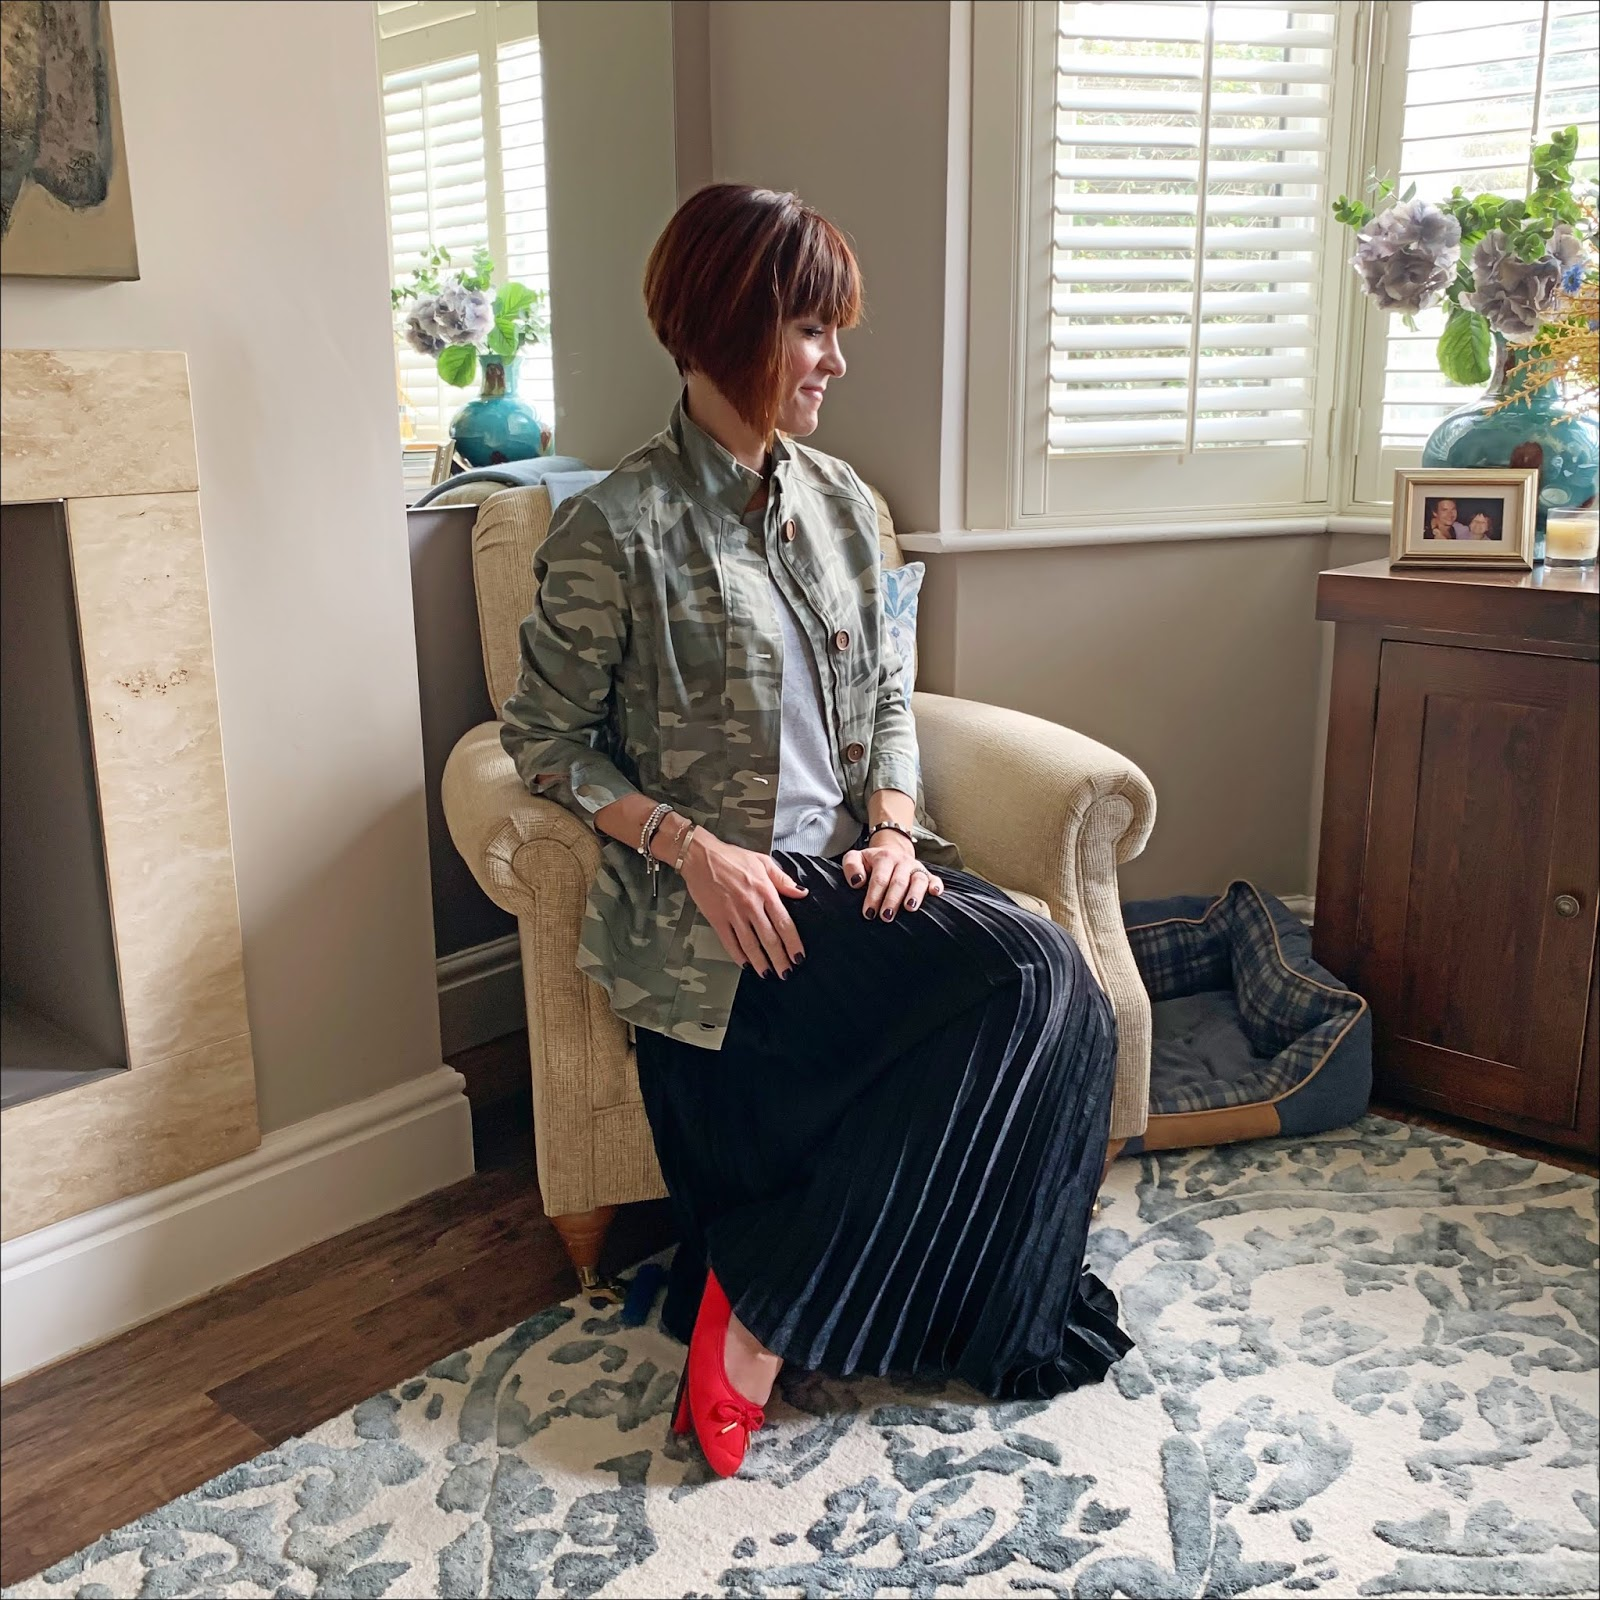 my midlife fashion, jd williams, jd williams camo stretch cotton utility jacket, jd williams sunray pleat maxi skirt, jd williams bow ballerina shoes, jd williams crew neck jumper